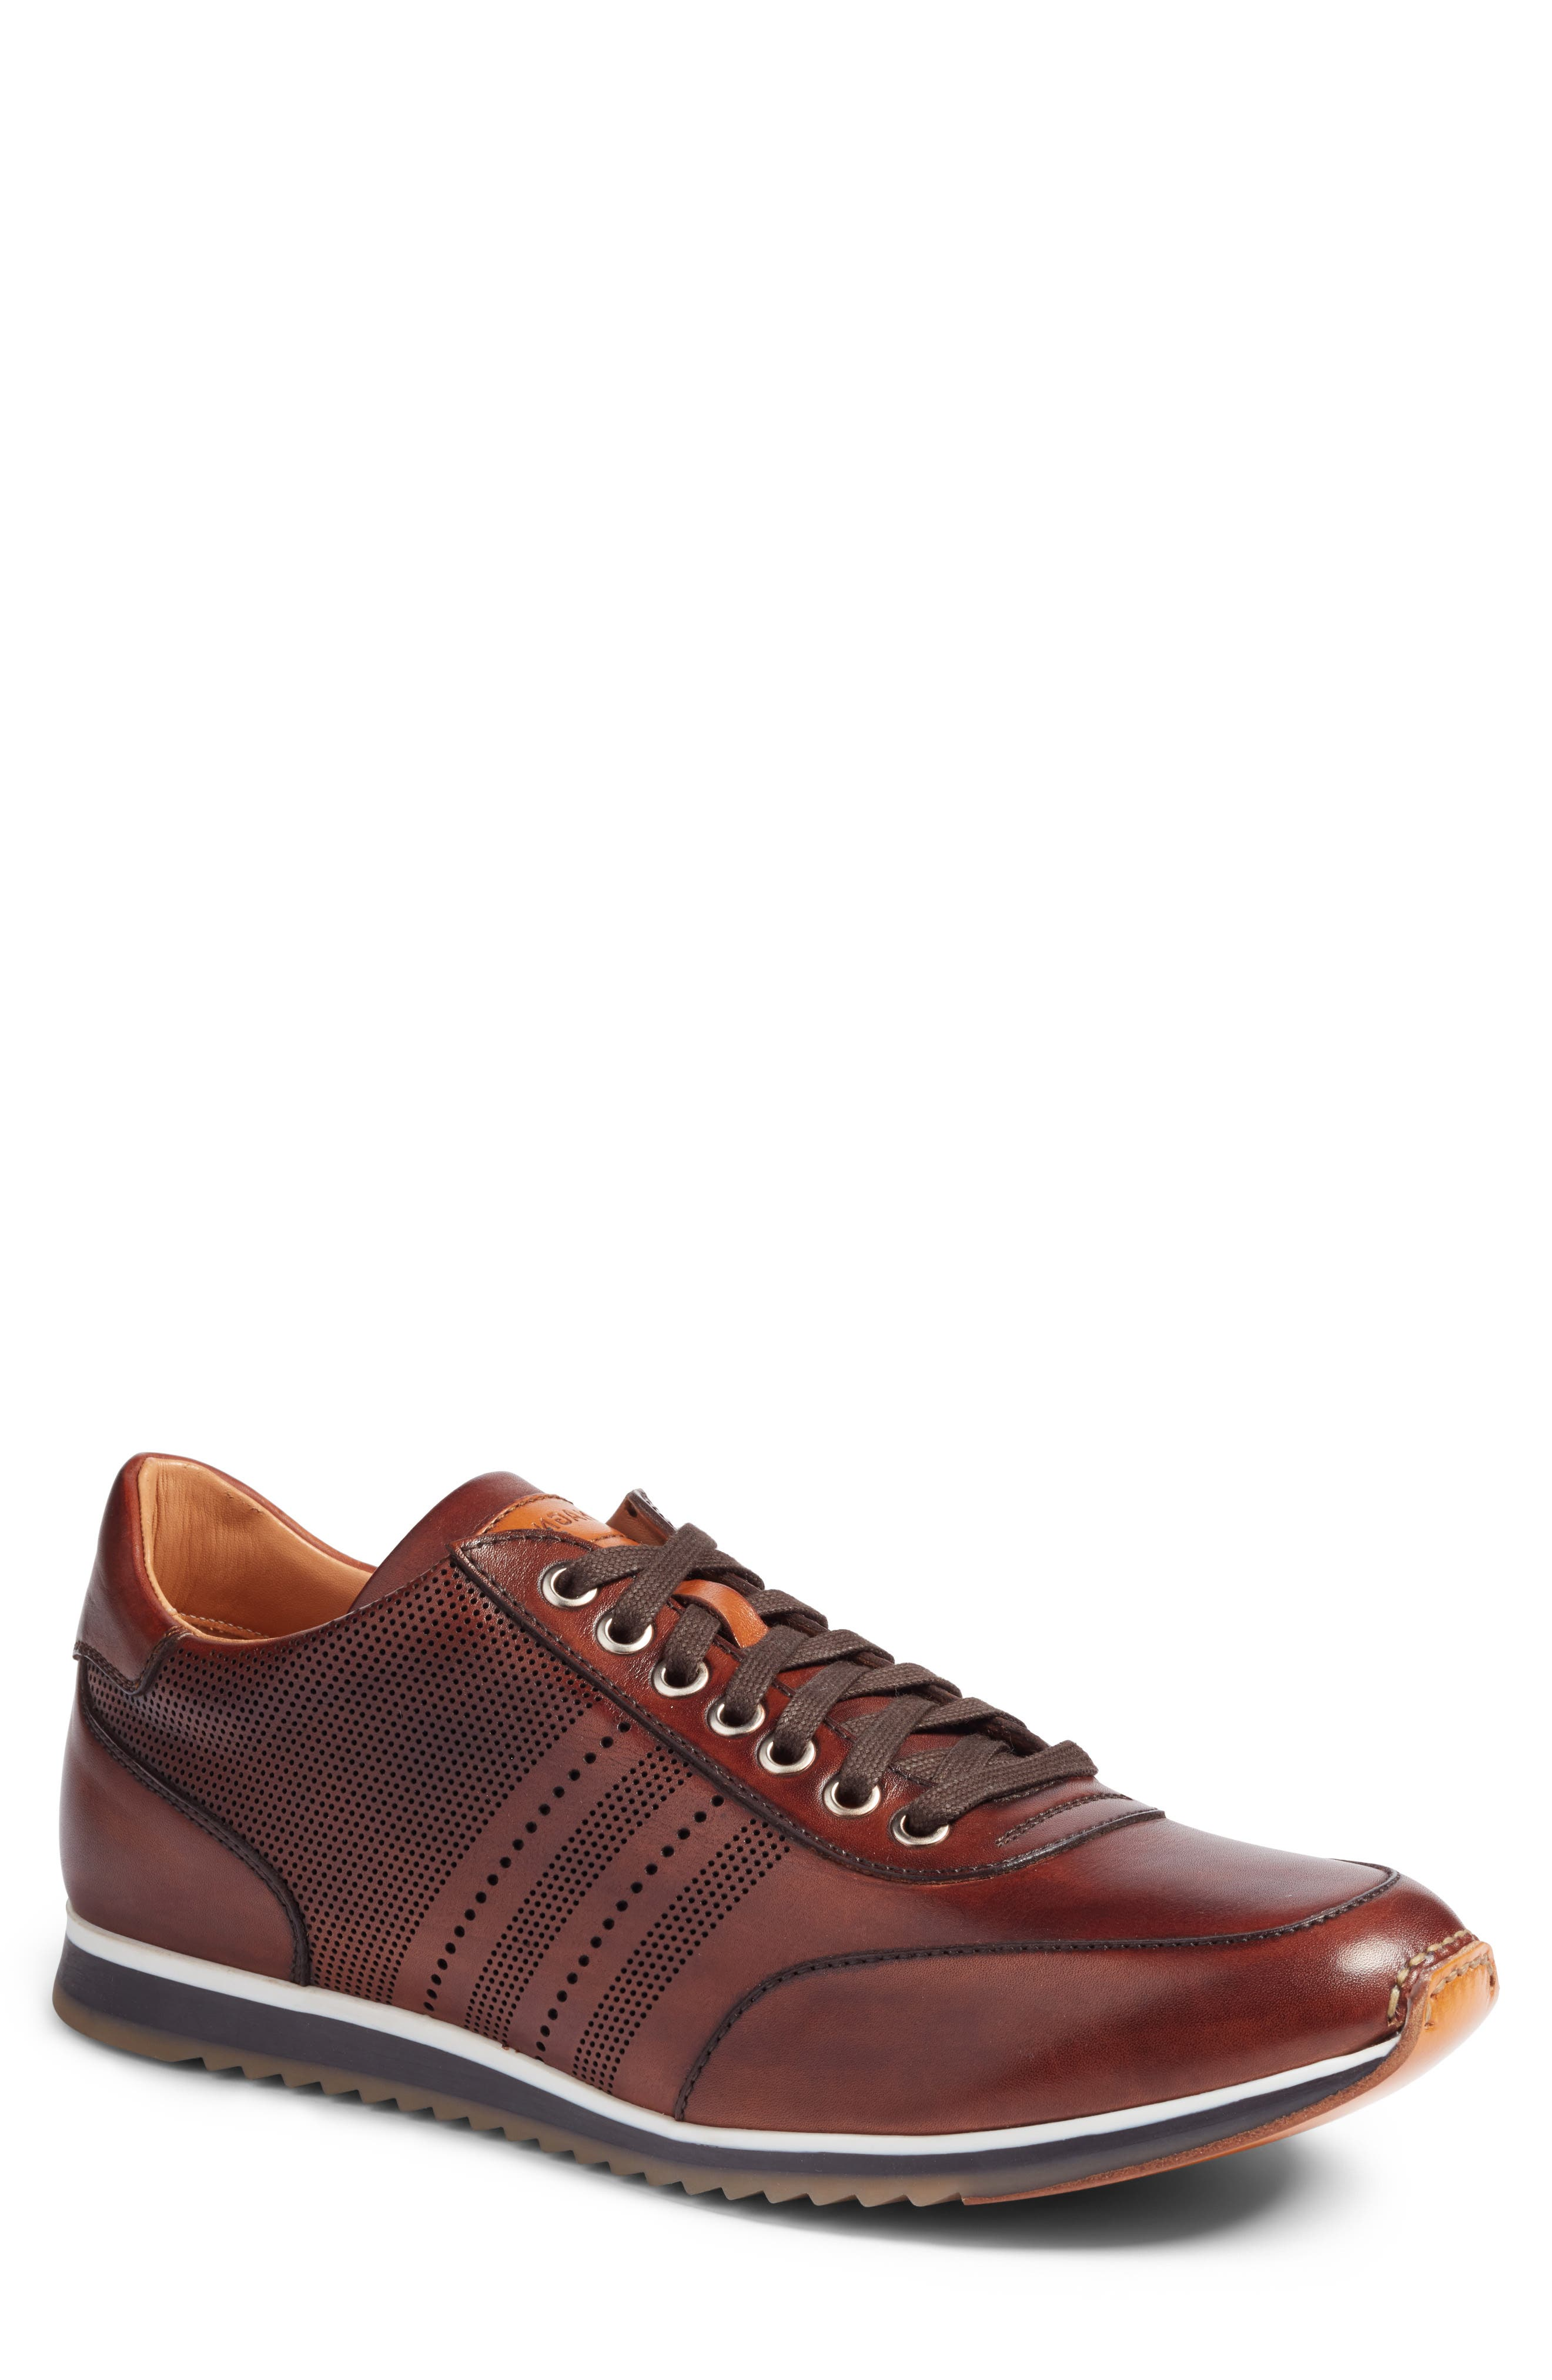 Alternate Image 1 Selected - Magnanni Merino Sneaker (Men)